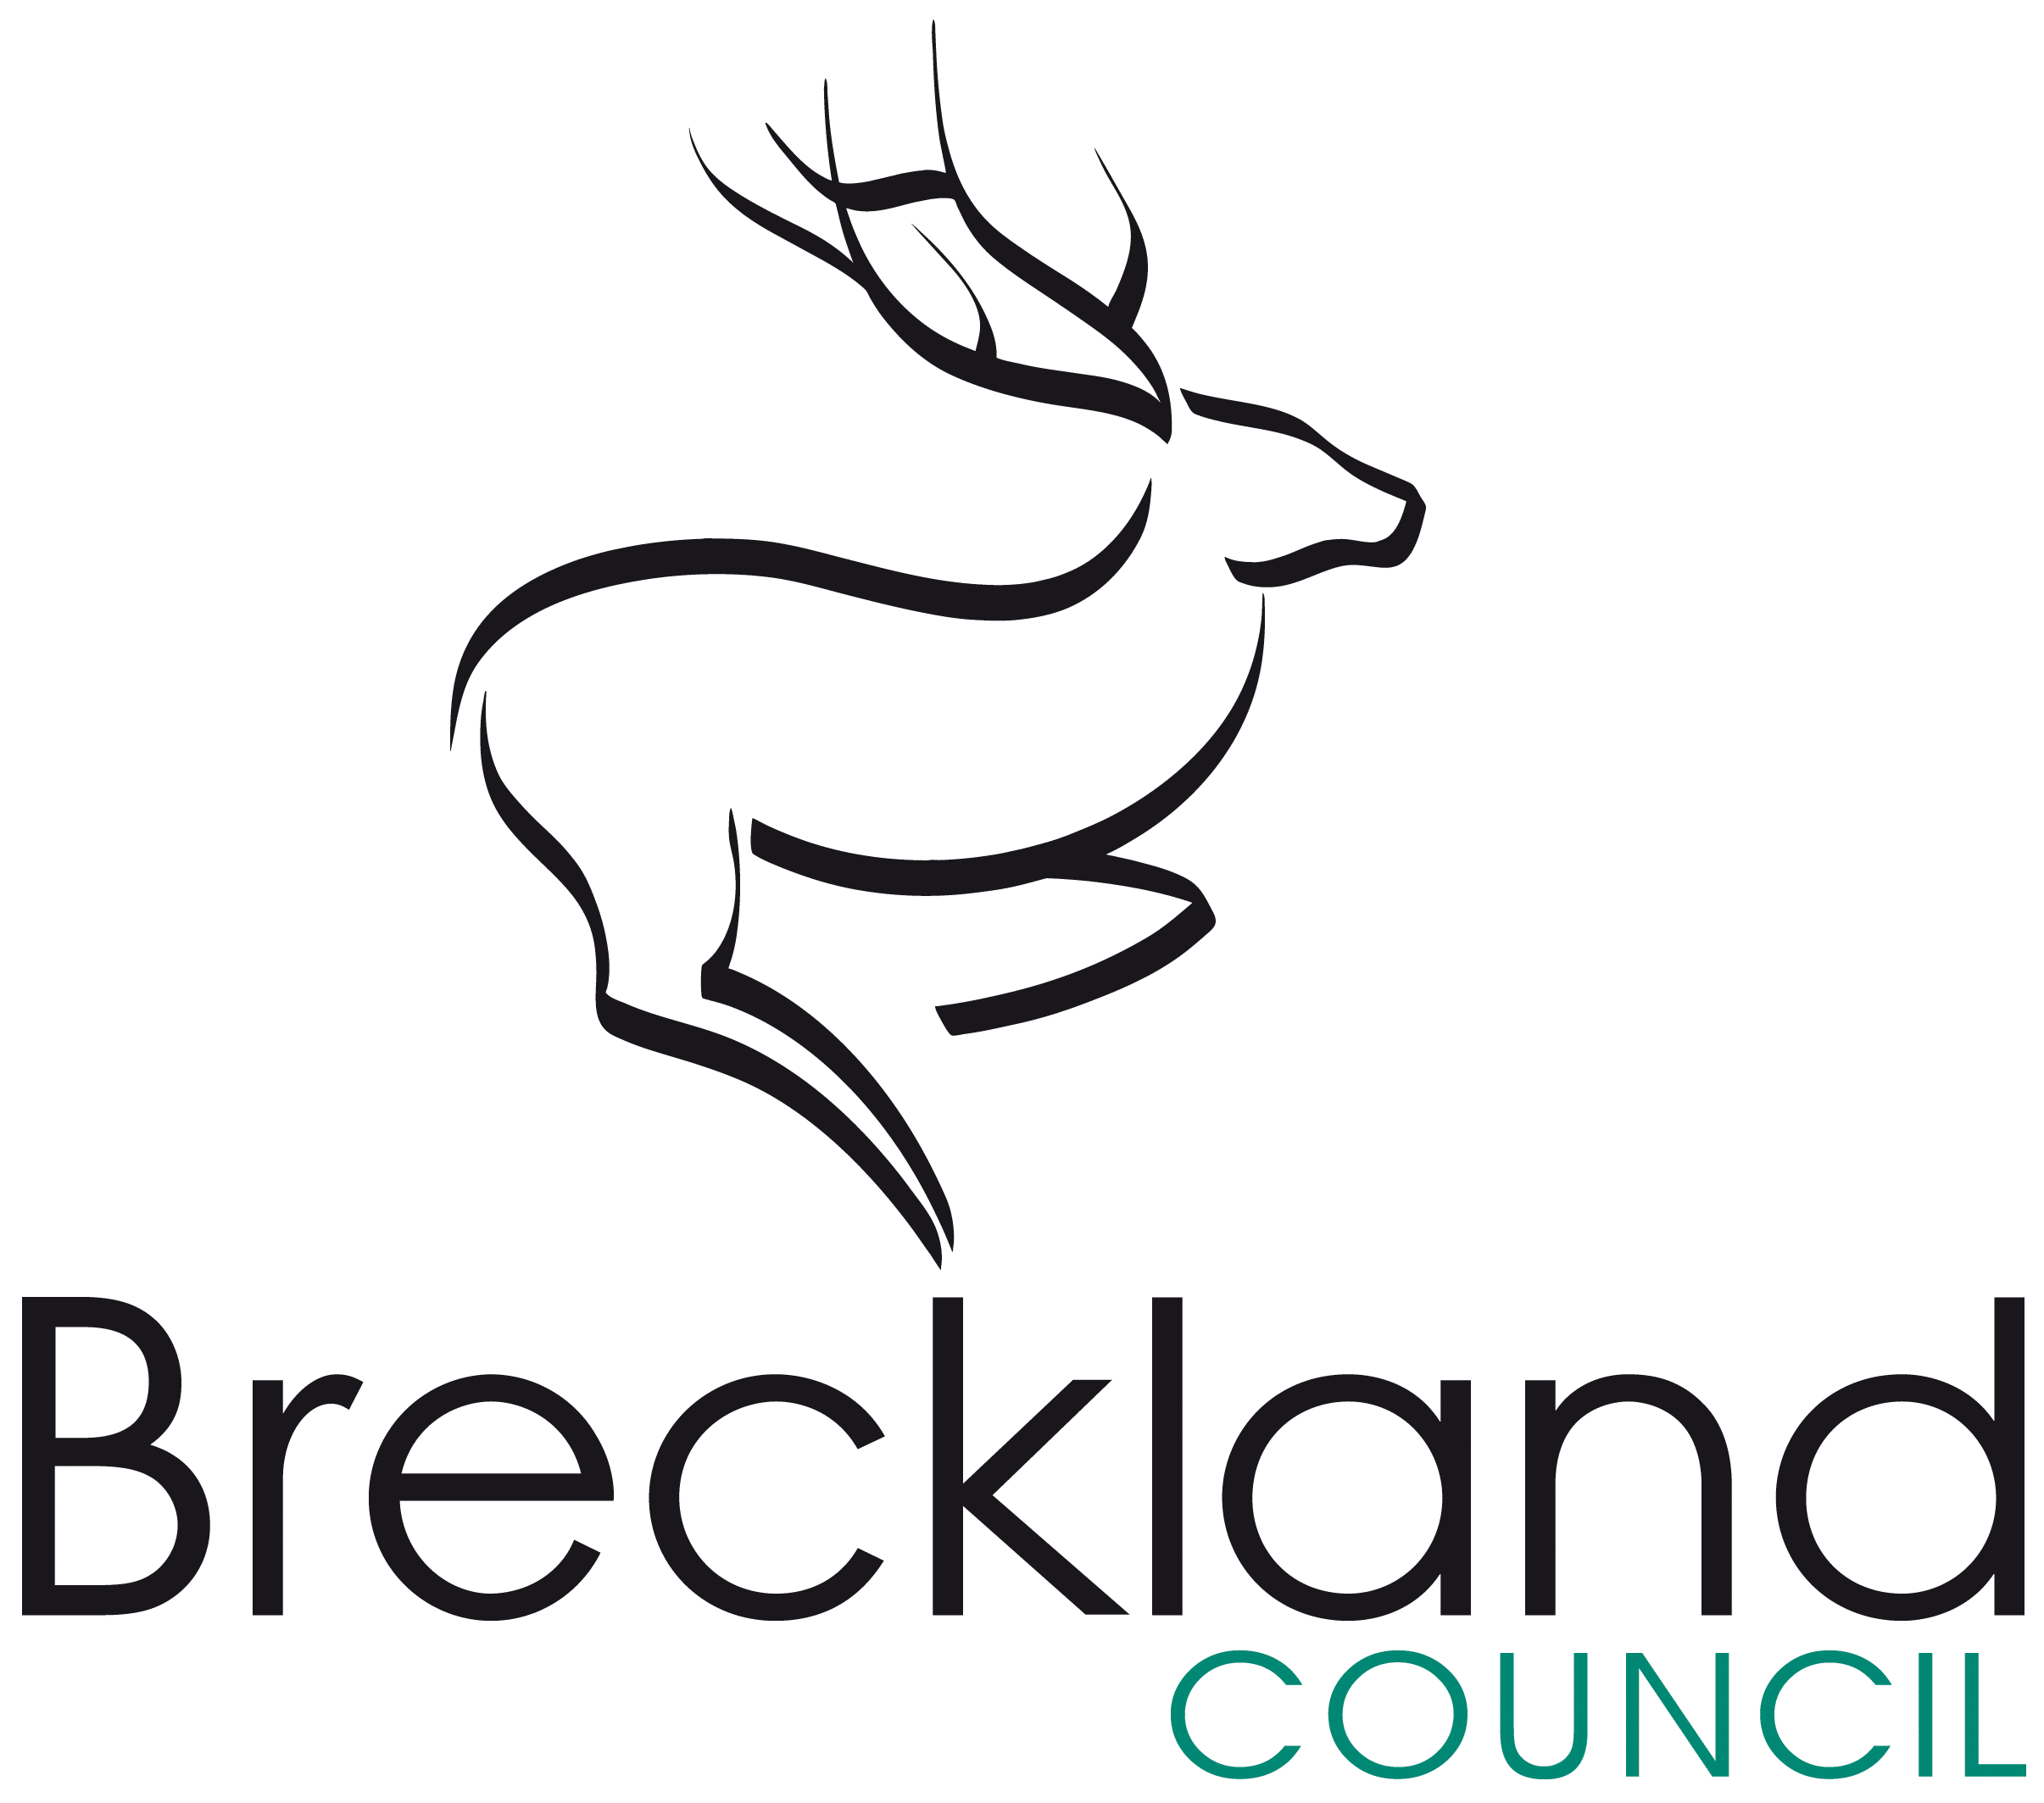 Breckland Council logo, click to visit their website